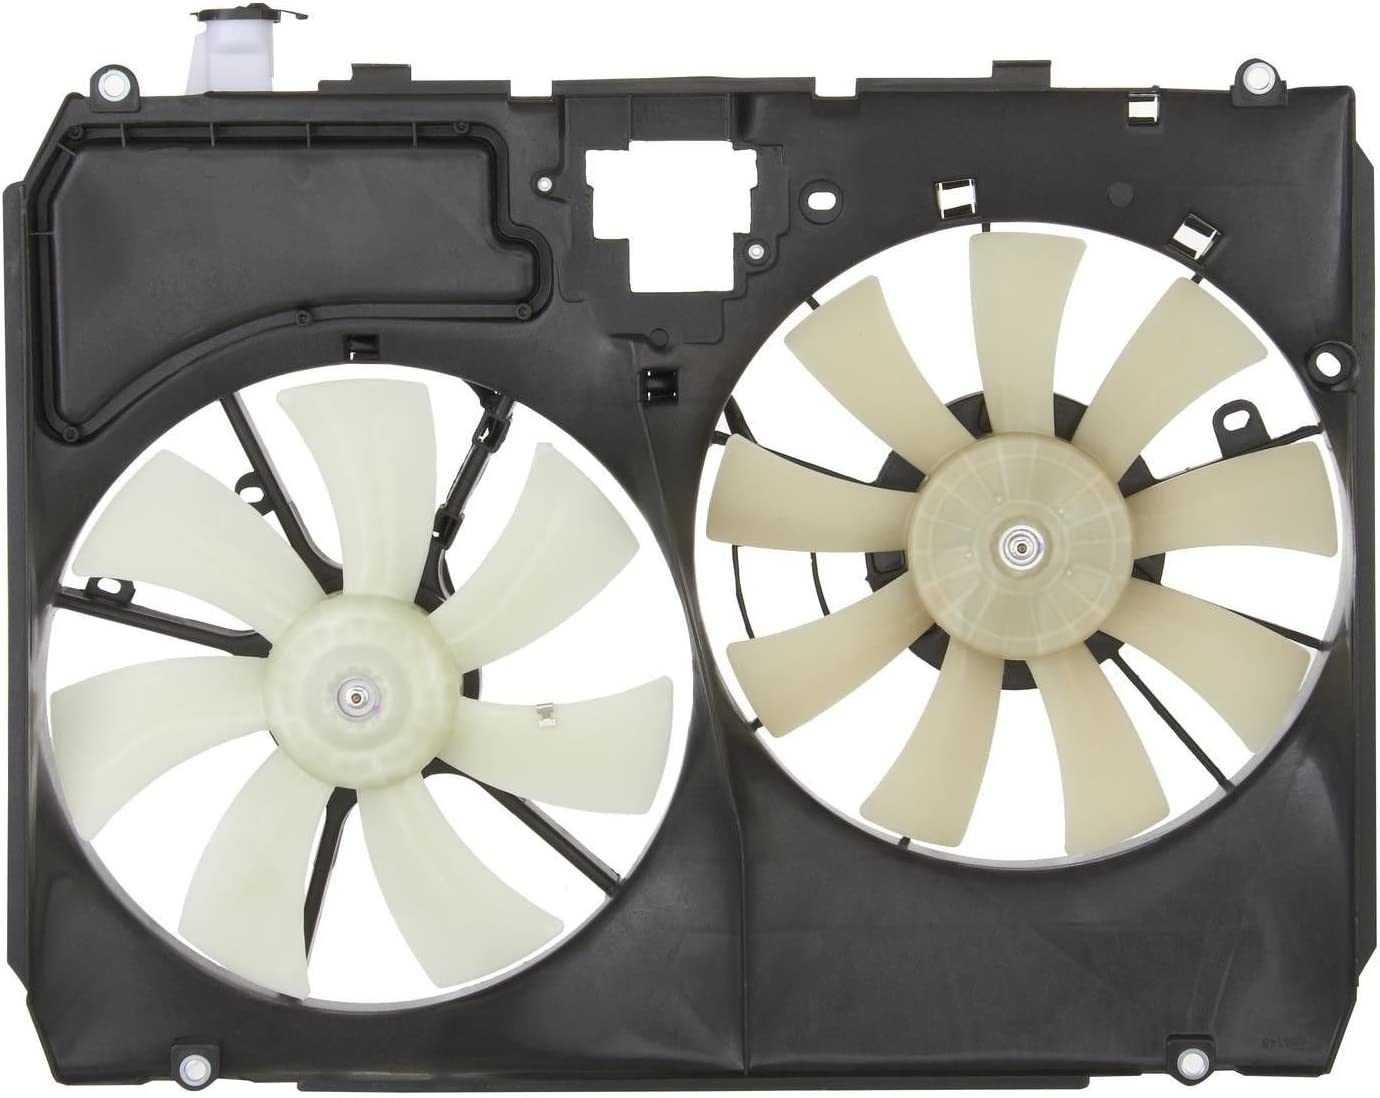 Dual Radiator and Condenser Fan Assembly - Cooling Direct Fit/For 167110A220 04-05 Toyota Sienna With Tow-Package (Without Module)